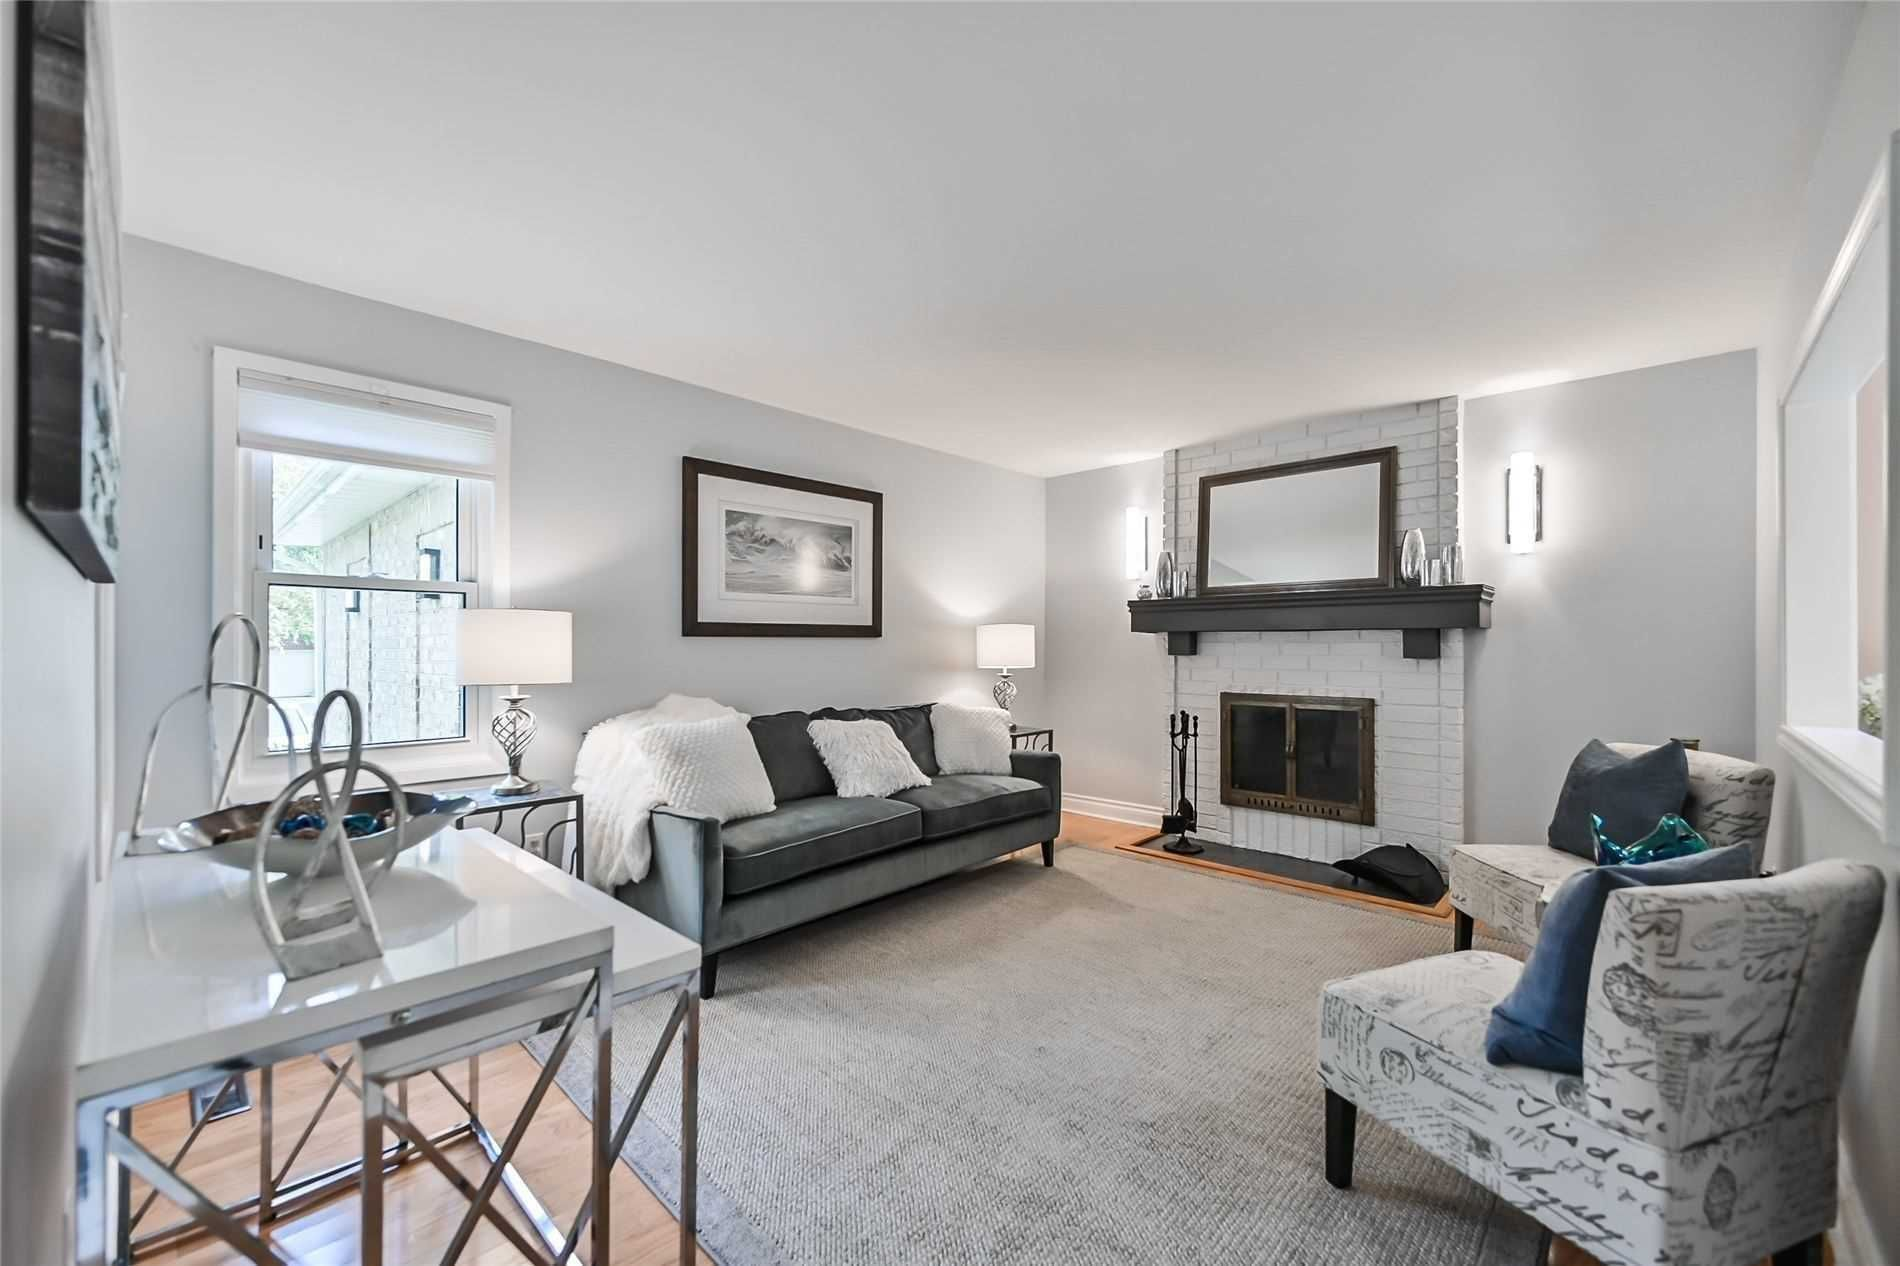 Main Photo: 4152 Wheelwright Cres in Mississauga: Erin Mills Freehold for sale : MLS®# W4581015